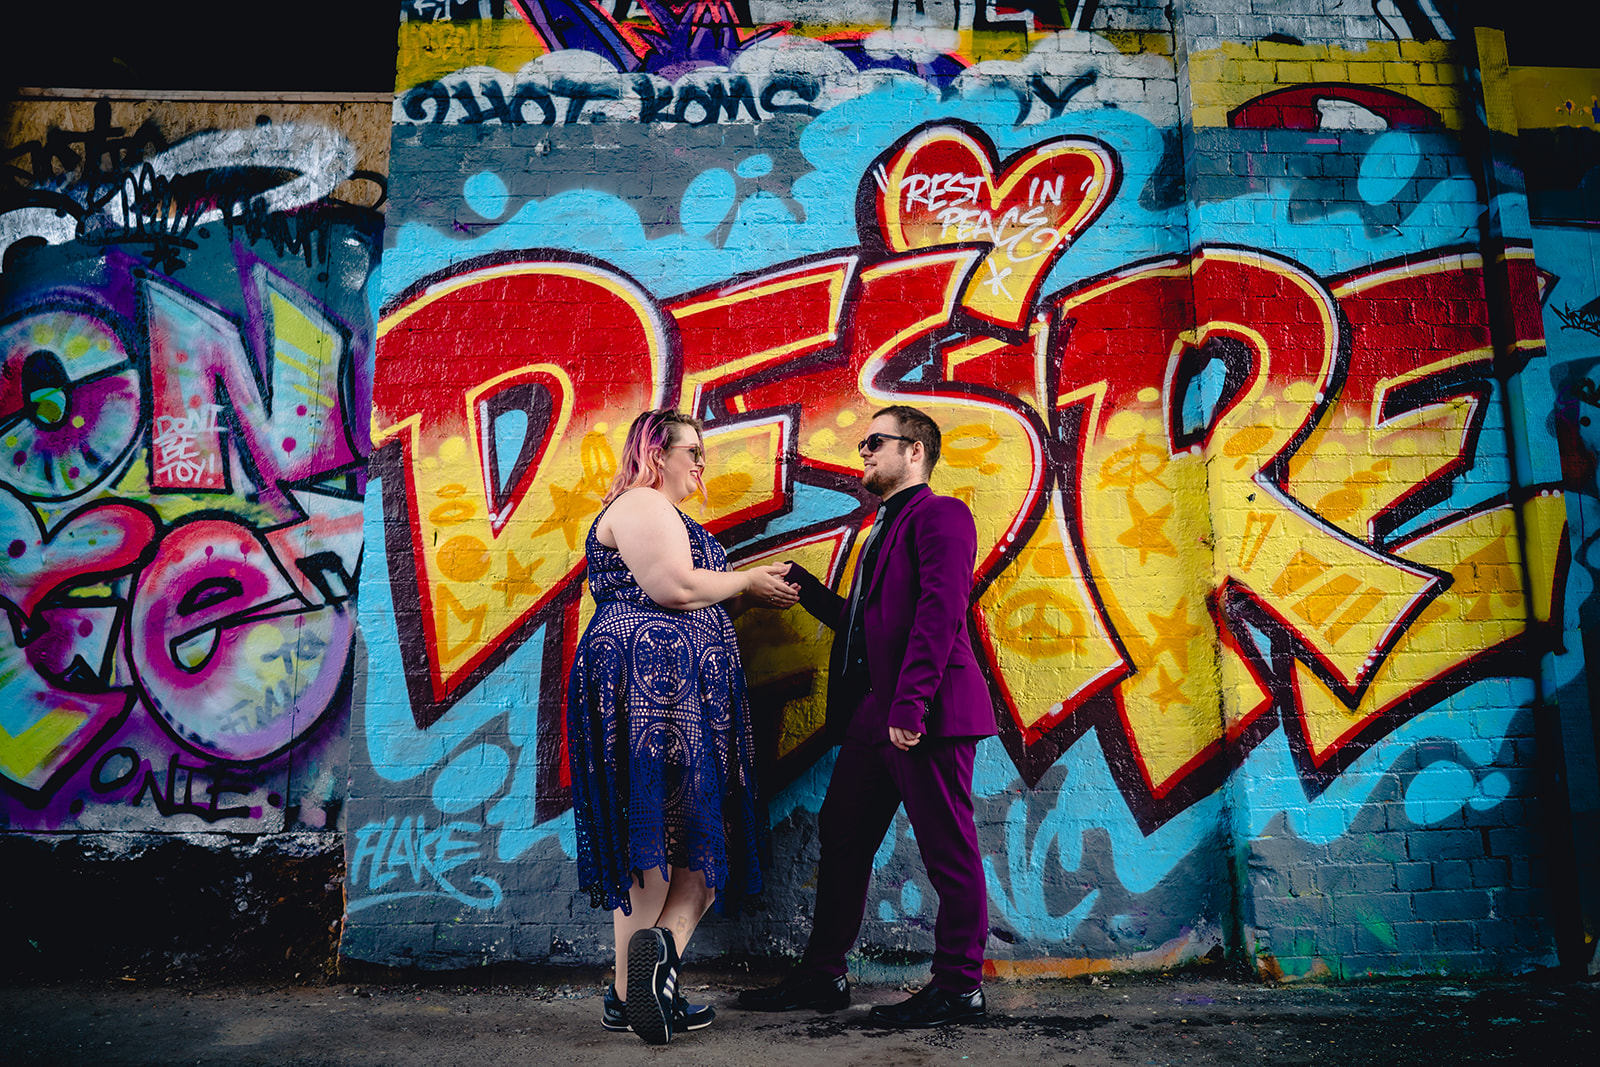 engagement shoots - birmingham engagement shoot - colourful wedding photoshoot - quirky wedding photos - fun wedding photography - alternative wedding - casual engagement shoot